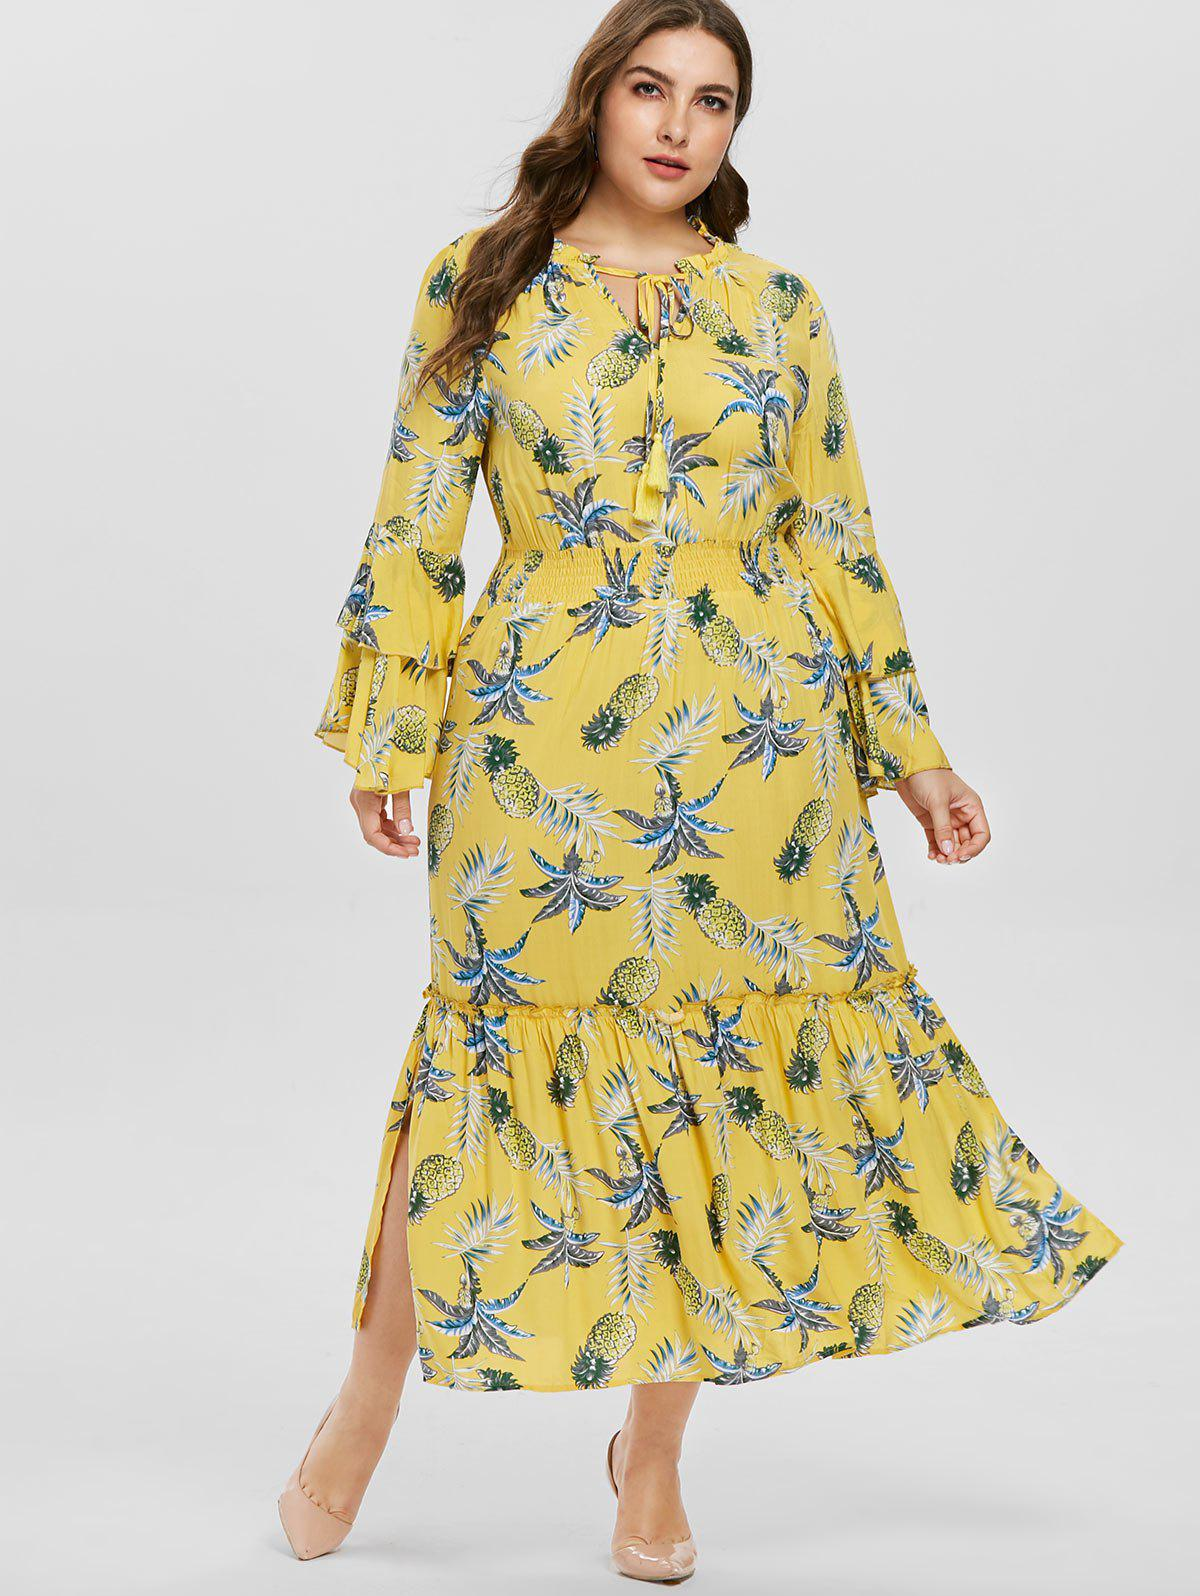 Pineapple Print Plus Size Maxi Dress